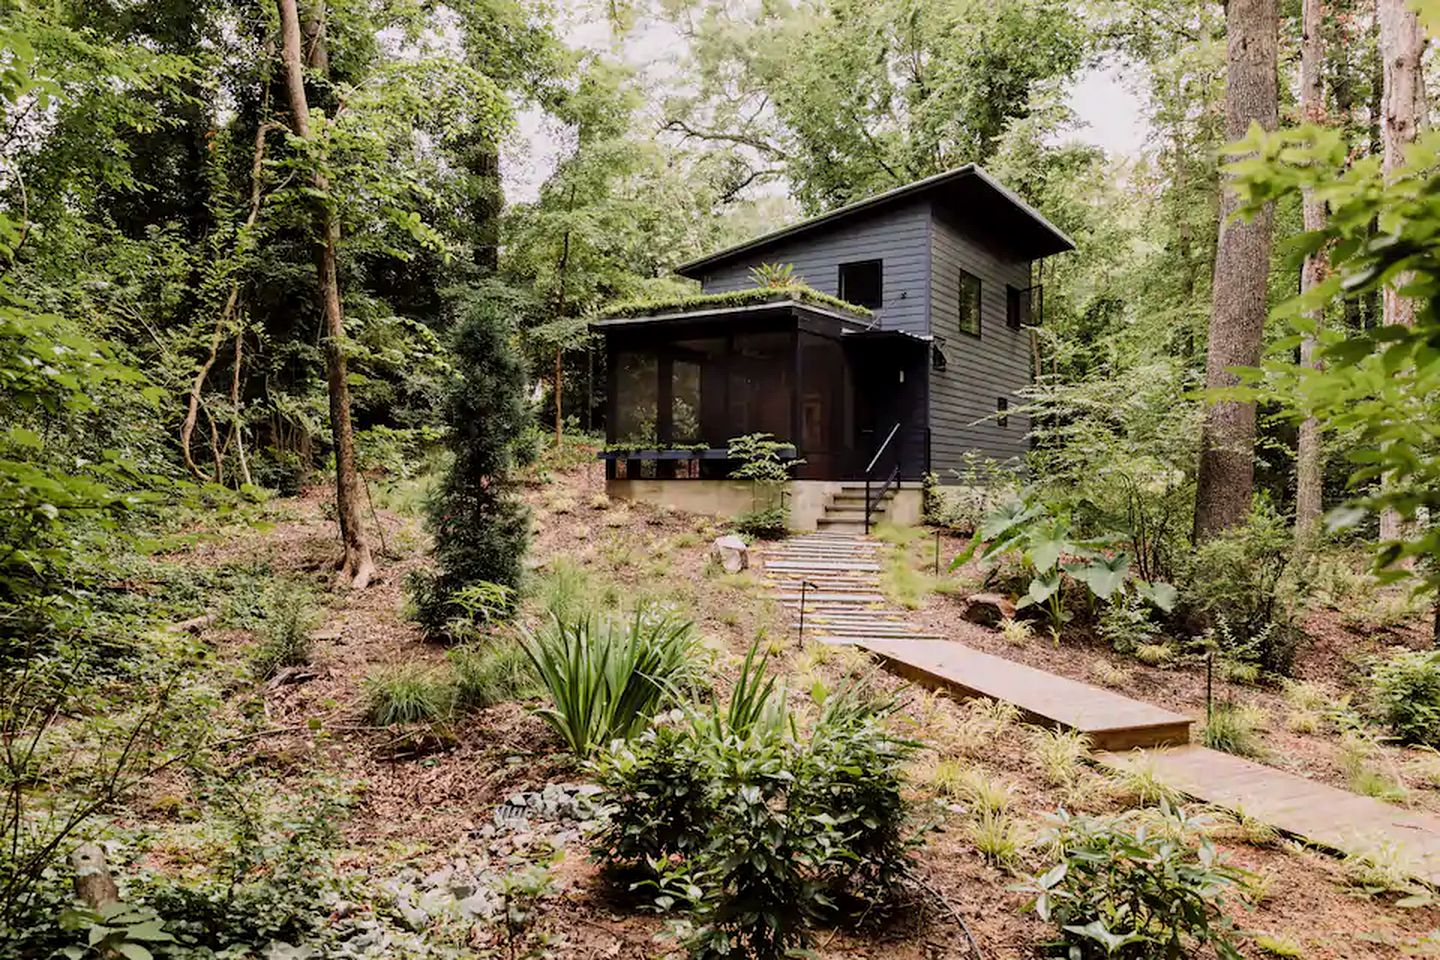 Tiny house rental for romantic glamping in North Carolina